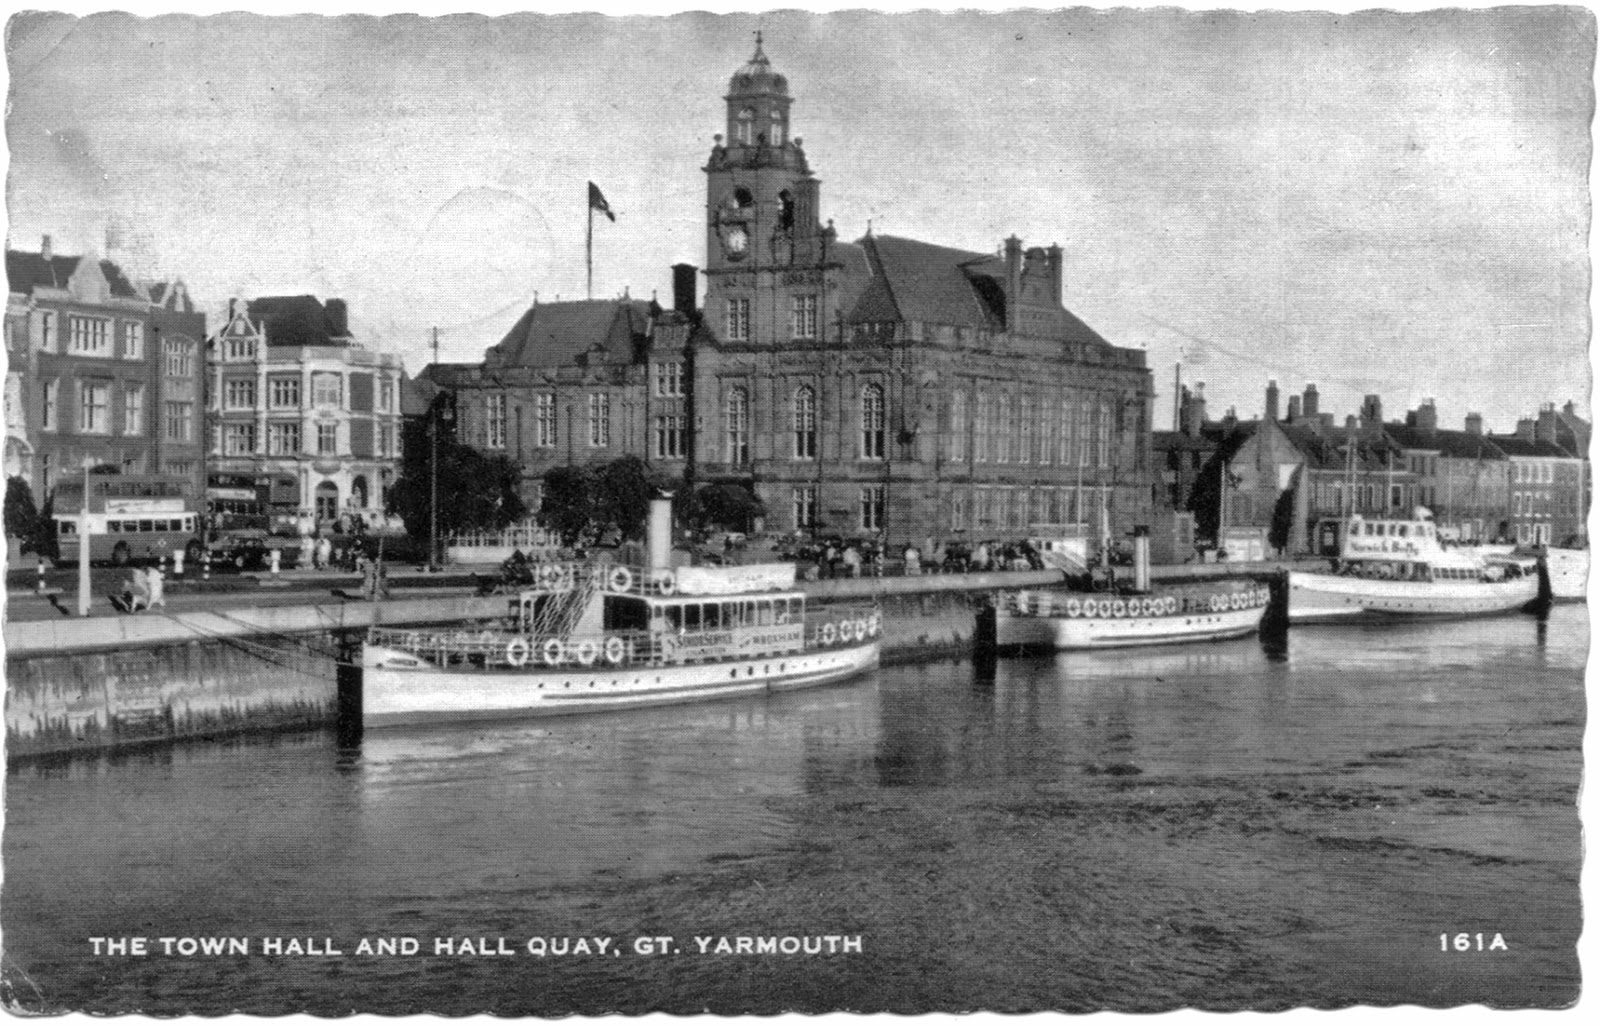 Town Hall and Hall Quay, Great Yarmouth